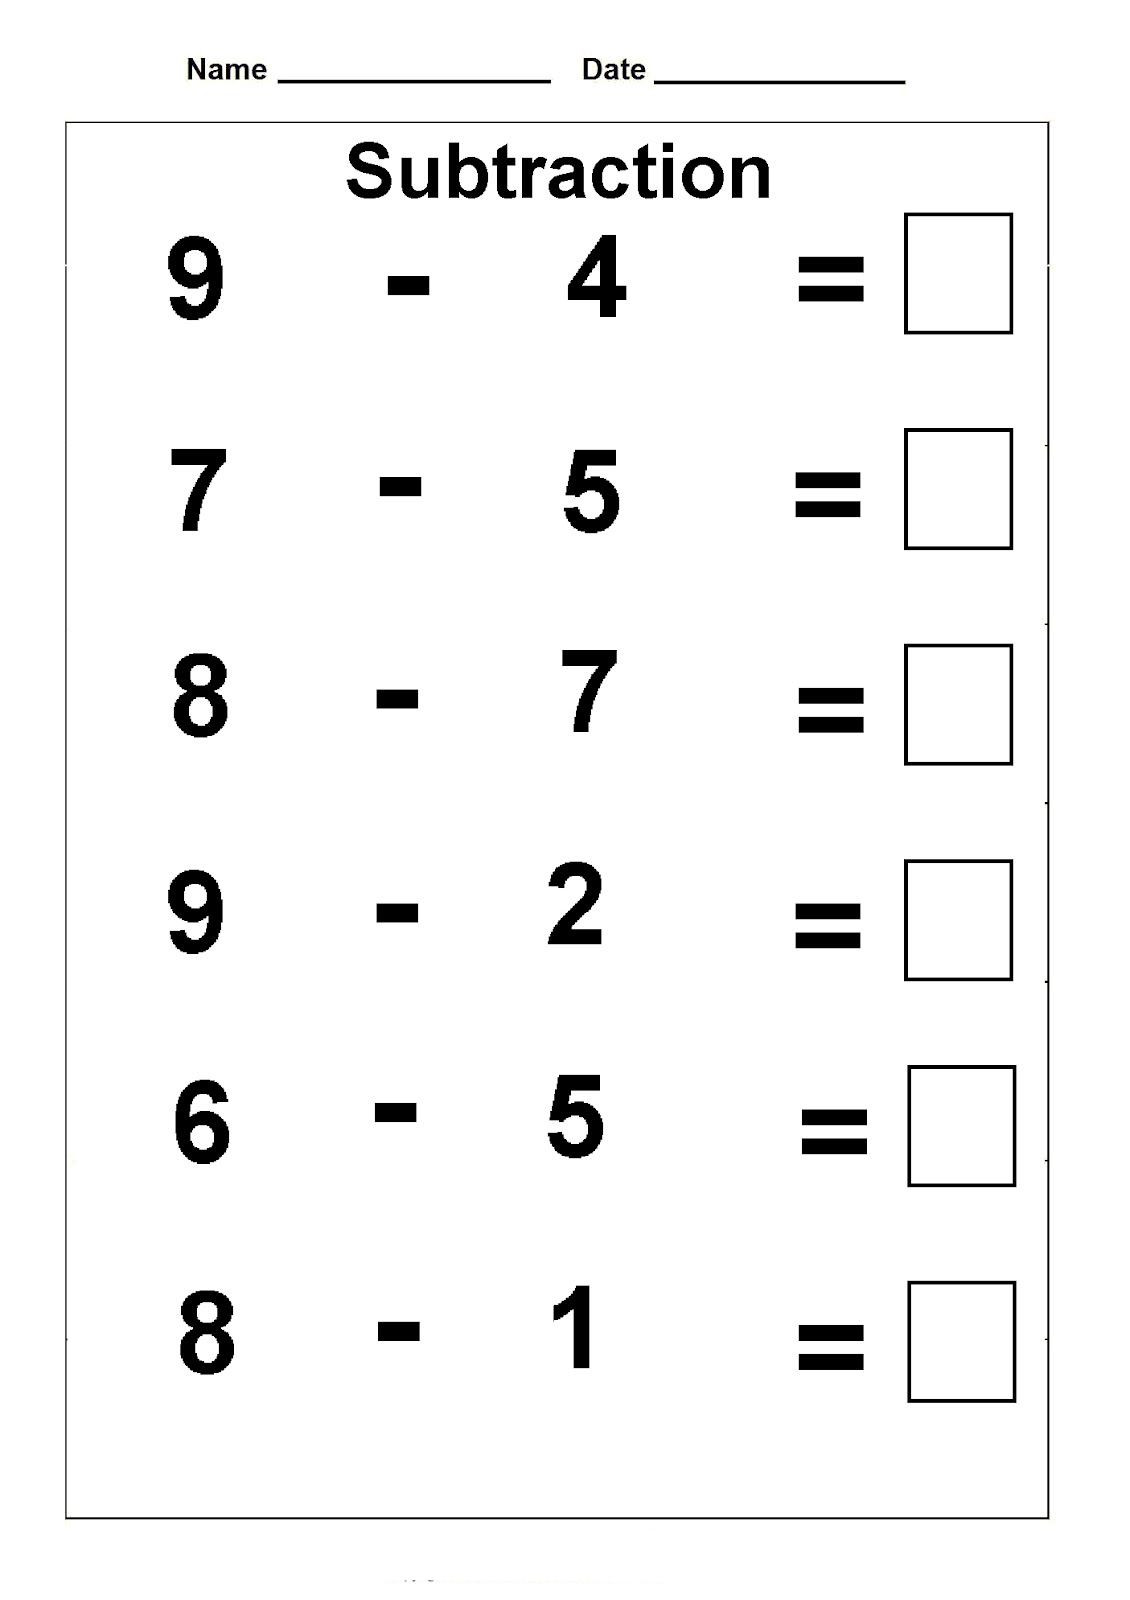 Addition Worksheets for 1st Grade 1st Grade Math Worksheets Best Coloring Pages for Kids